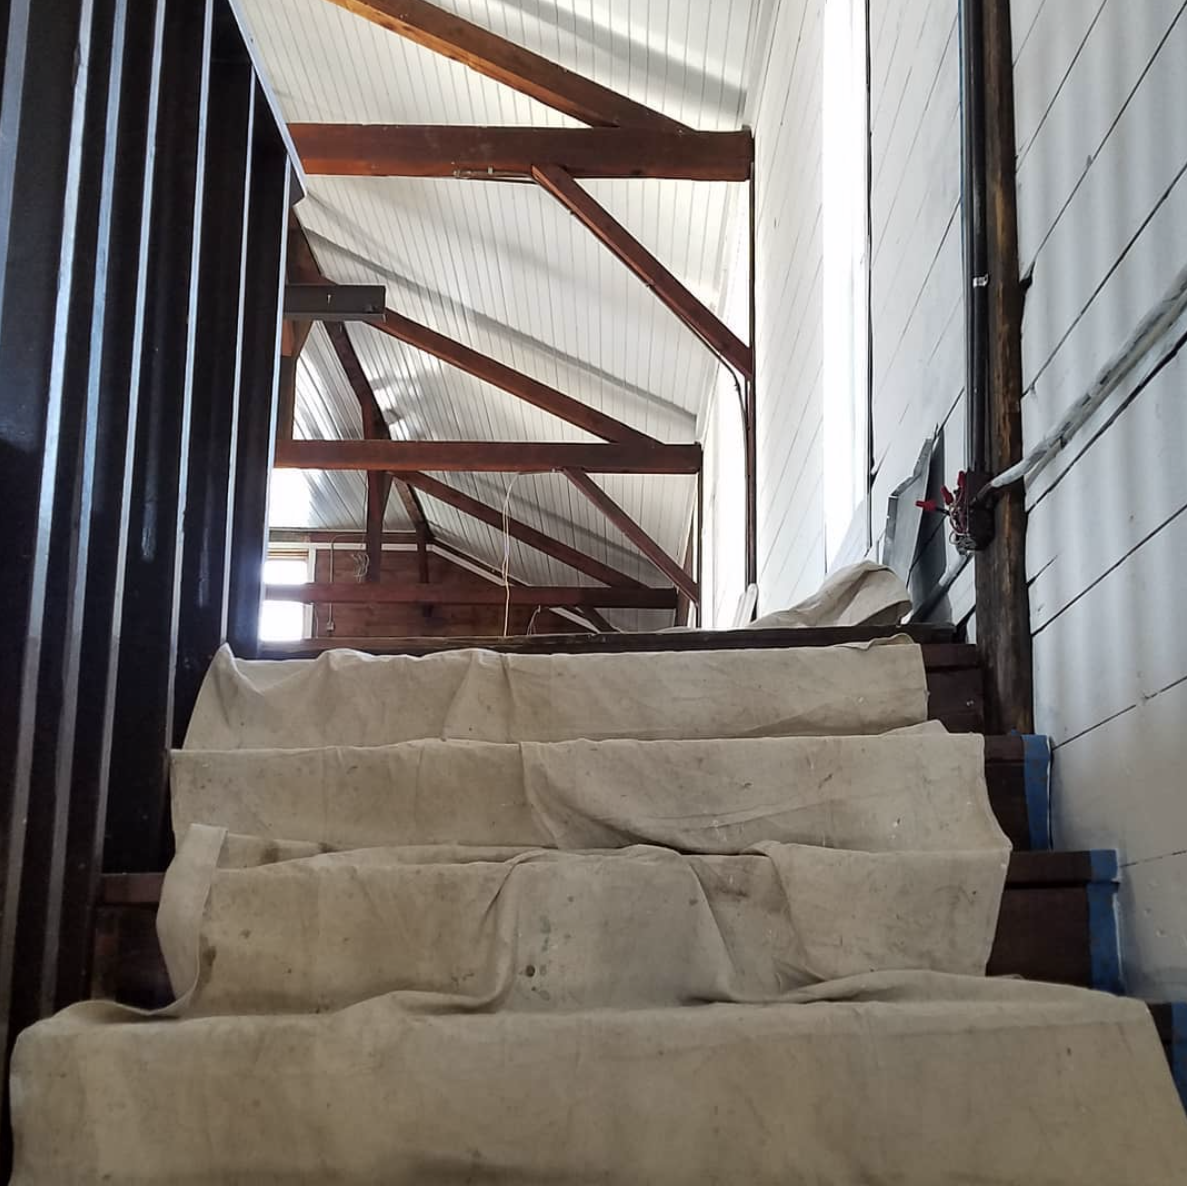 Stairs leading to the second floor gallery and #5 Gallery